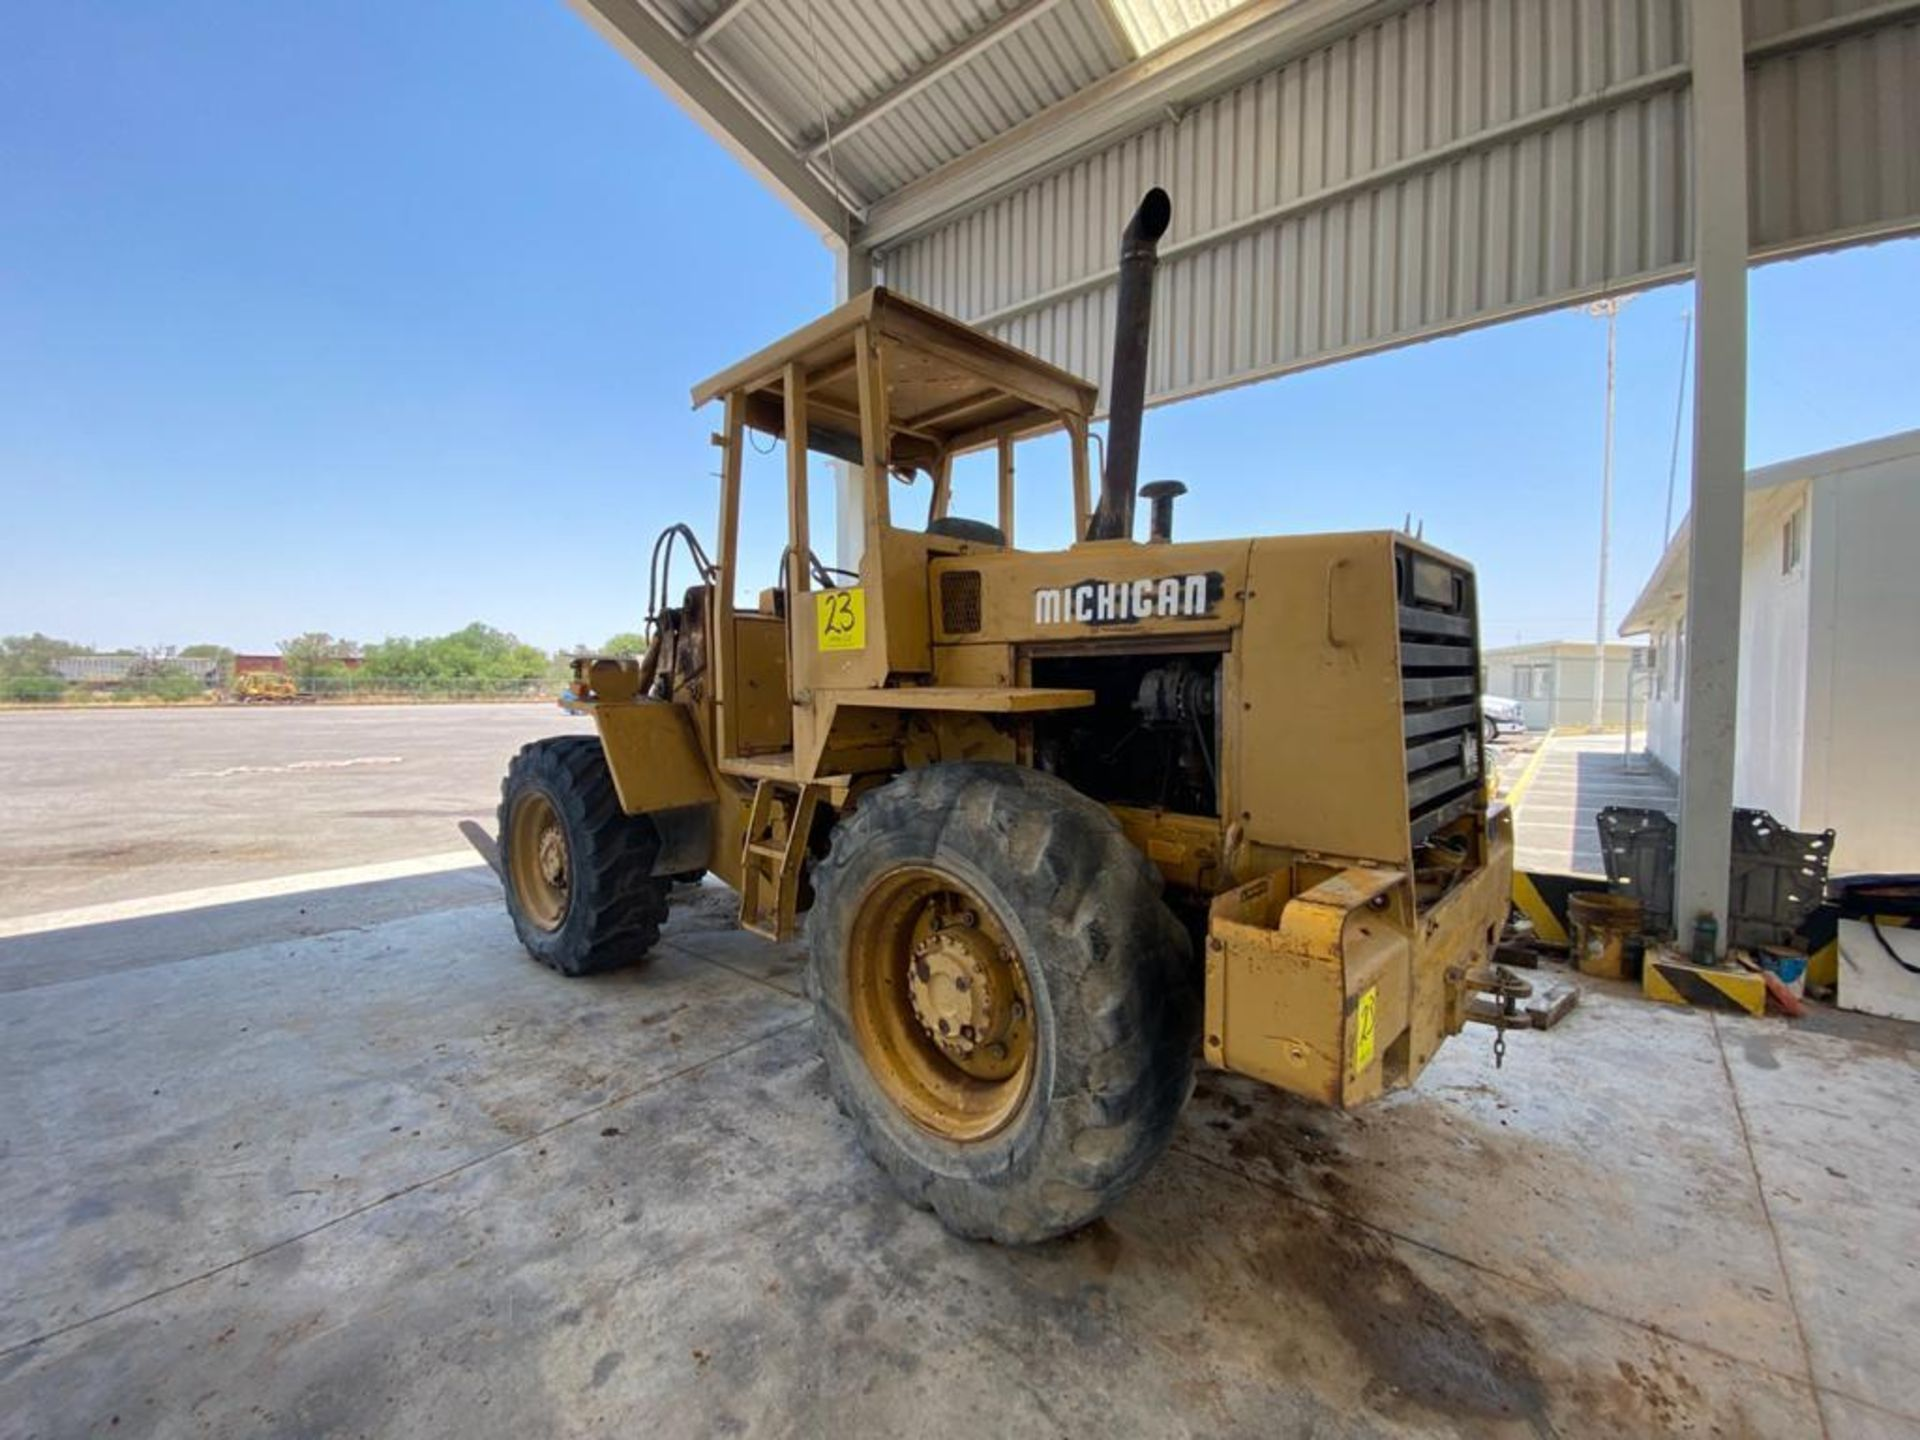 Volvo BM TYPE L 30 Michigan Front Loder, automatic transmission - Image 18 of 53